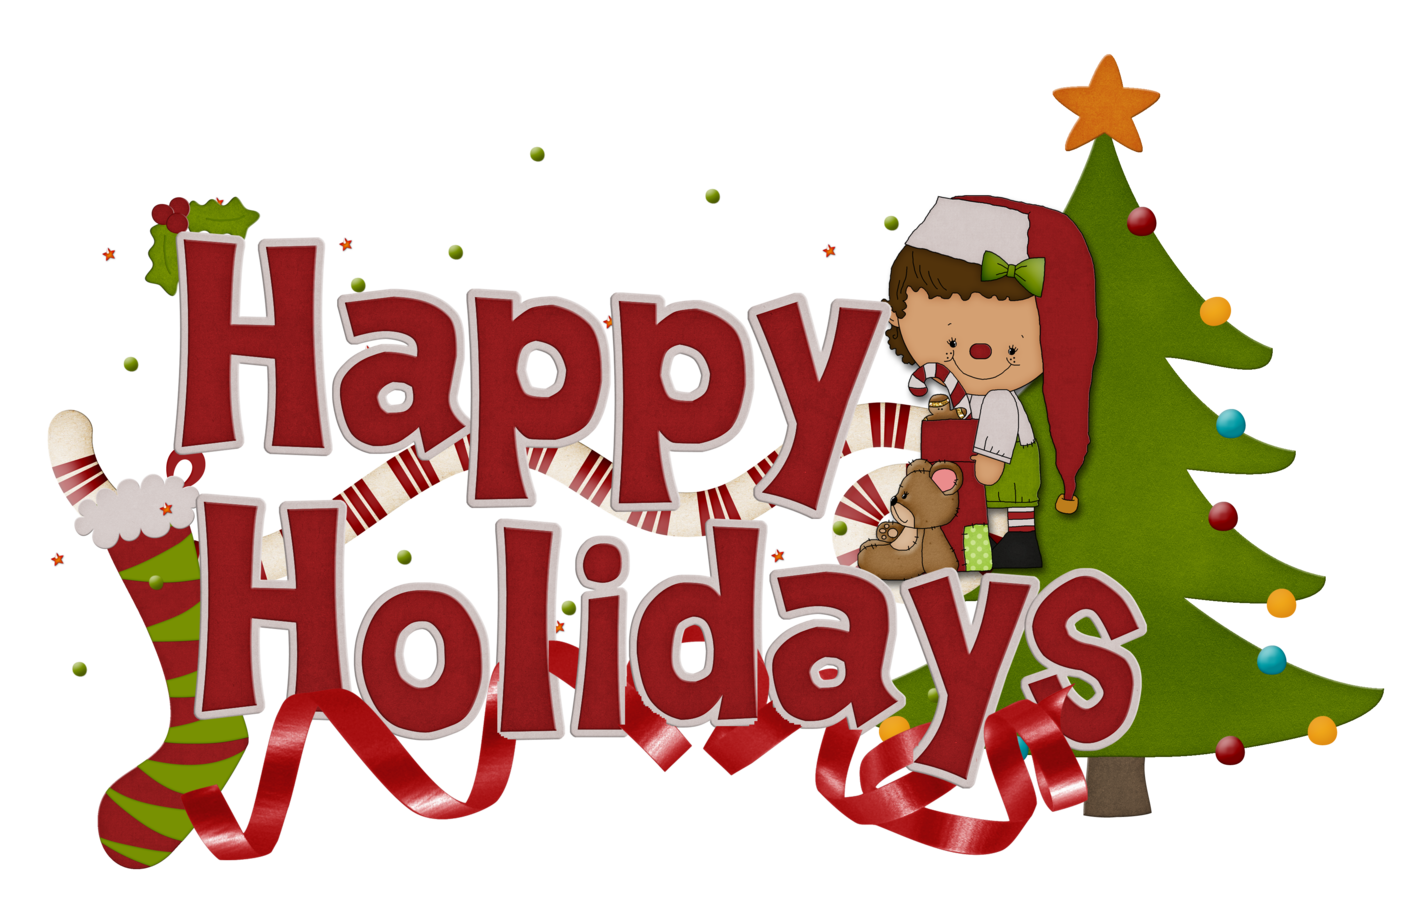 Happy holidays clipart reindeer. Holiday hour christmas clip